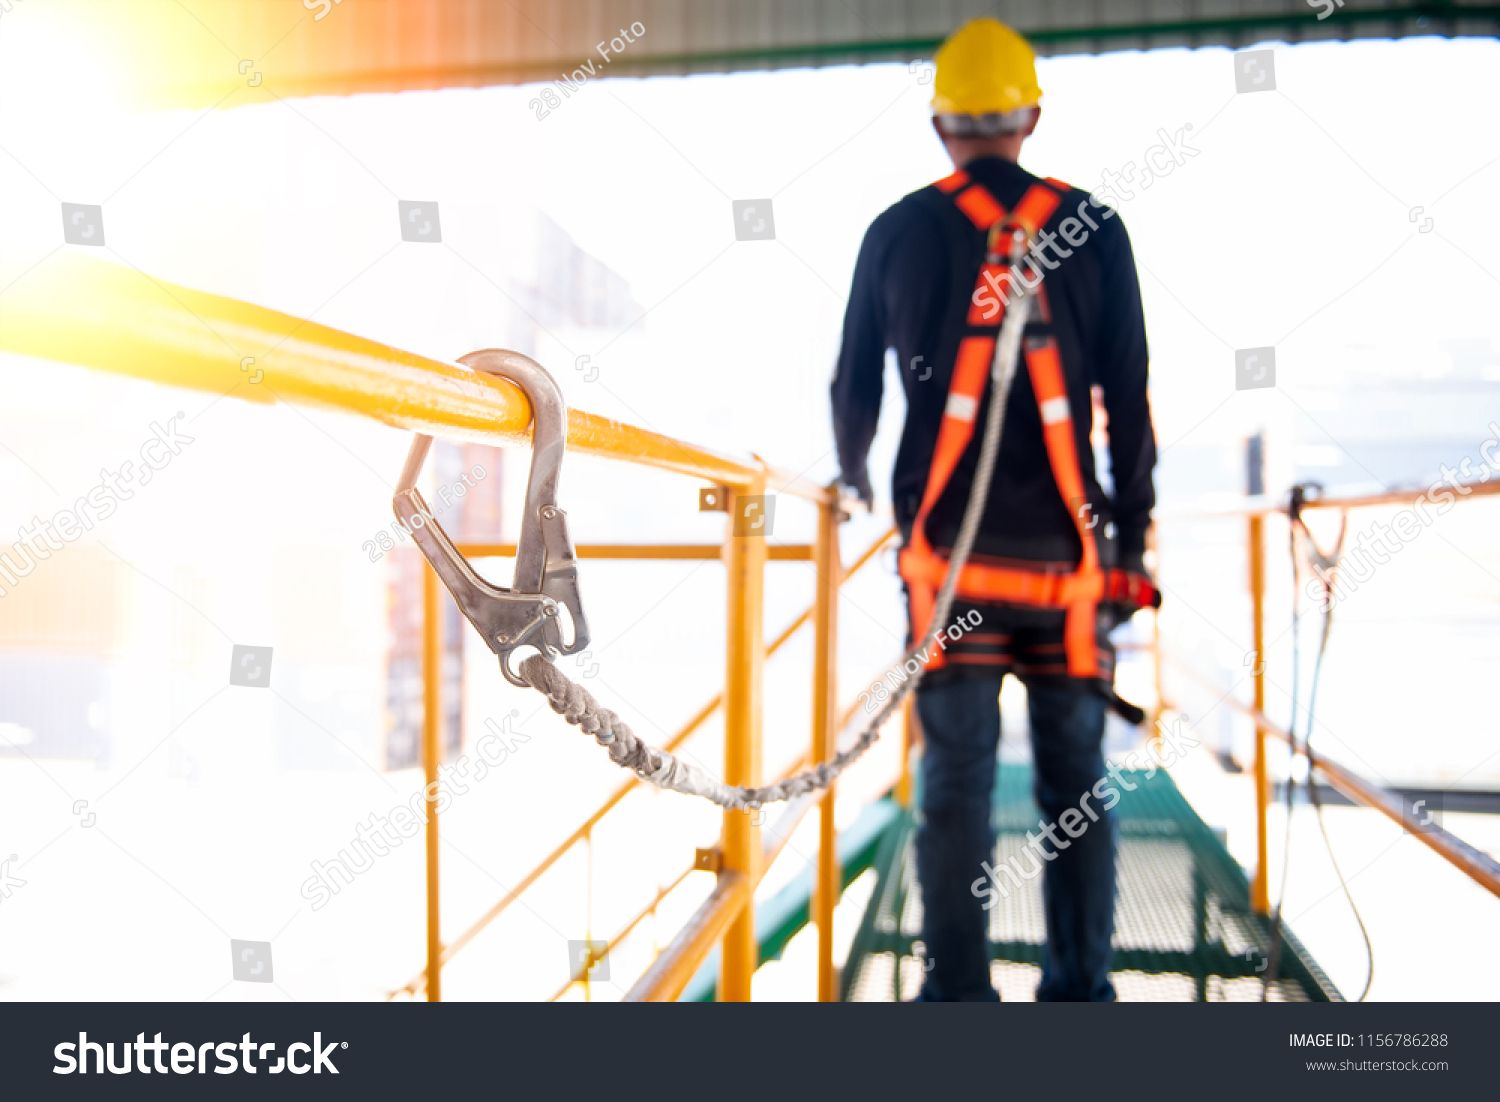 Construction Worker Use Safety Harness Safety Stock Photo Edit Now 1156786288